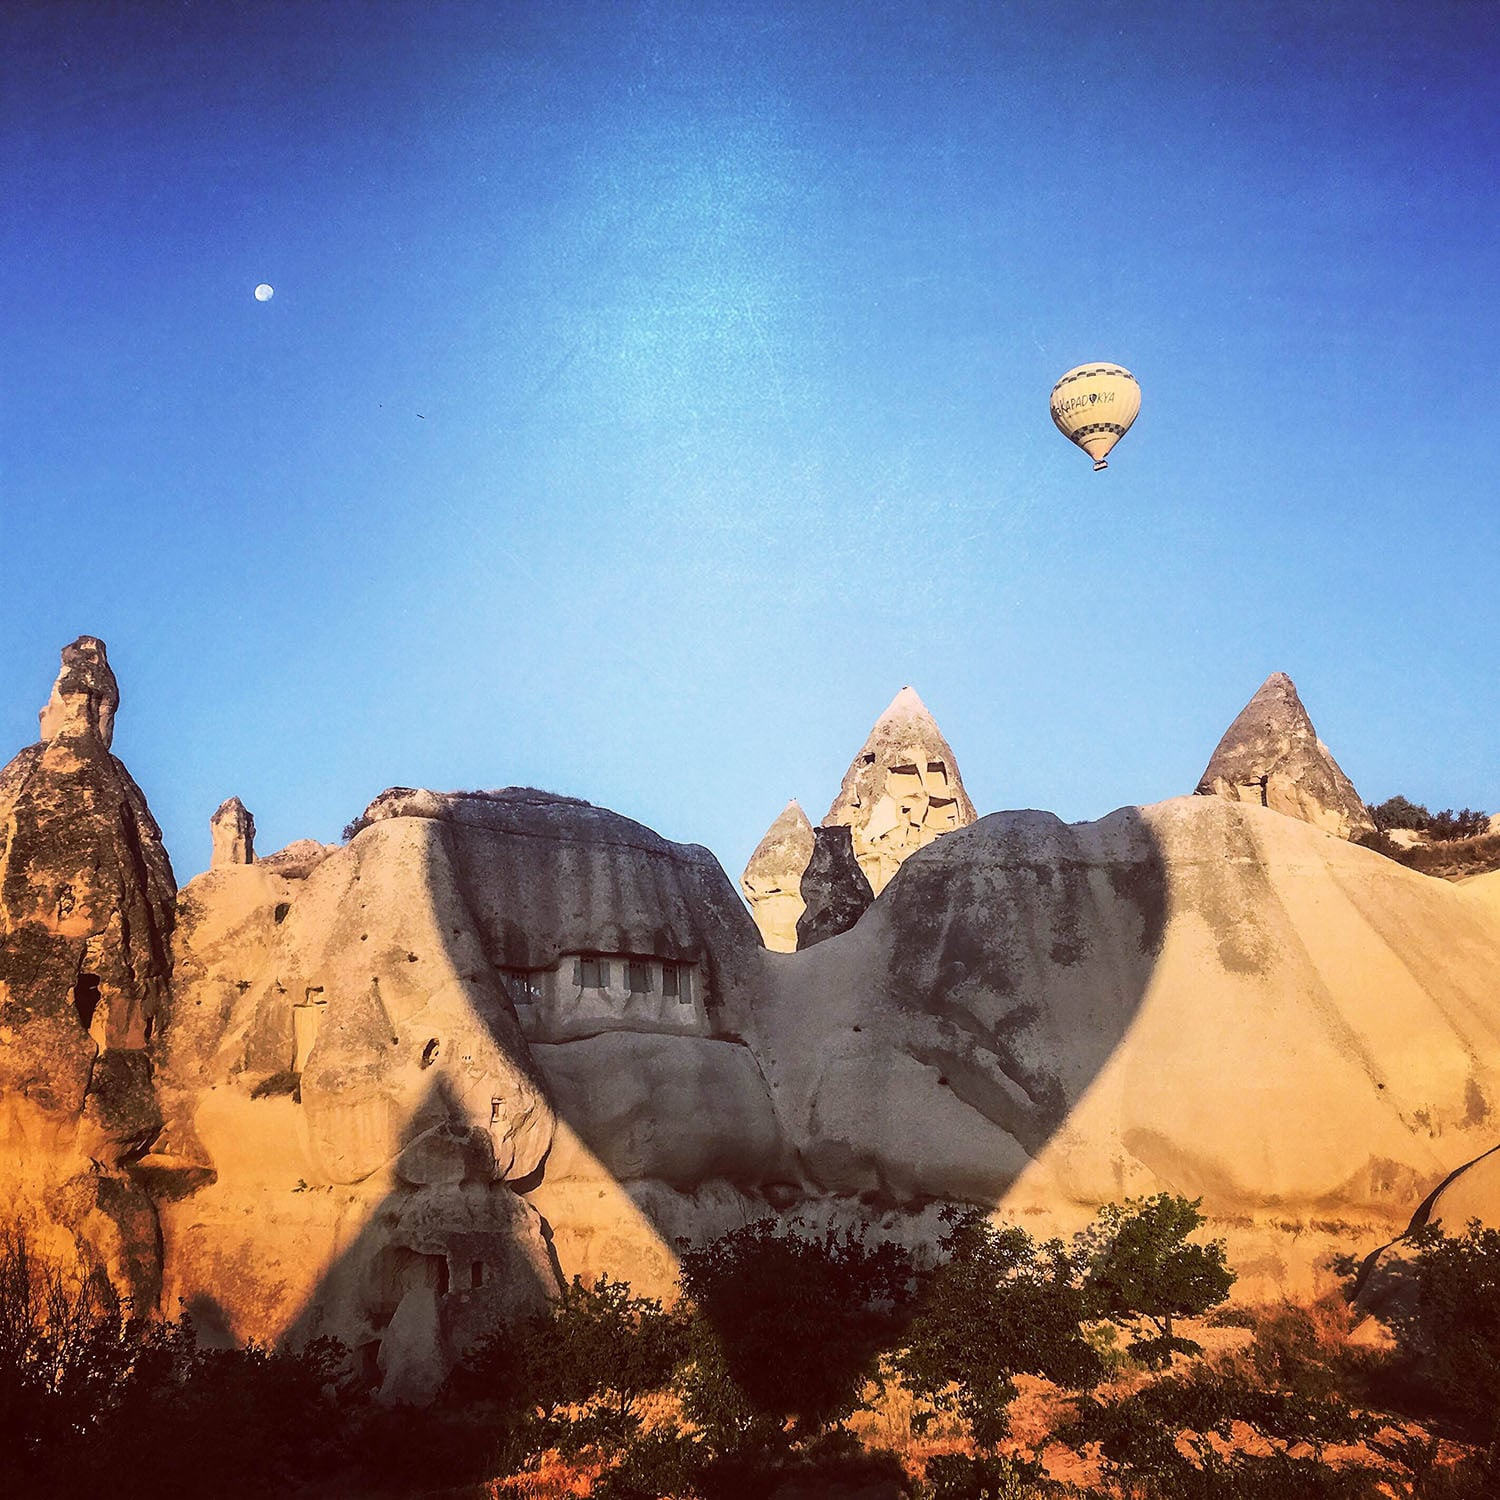 Our balloon made a heart-shaped shadow over Pigeon Valley, Cappadocia.